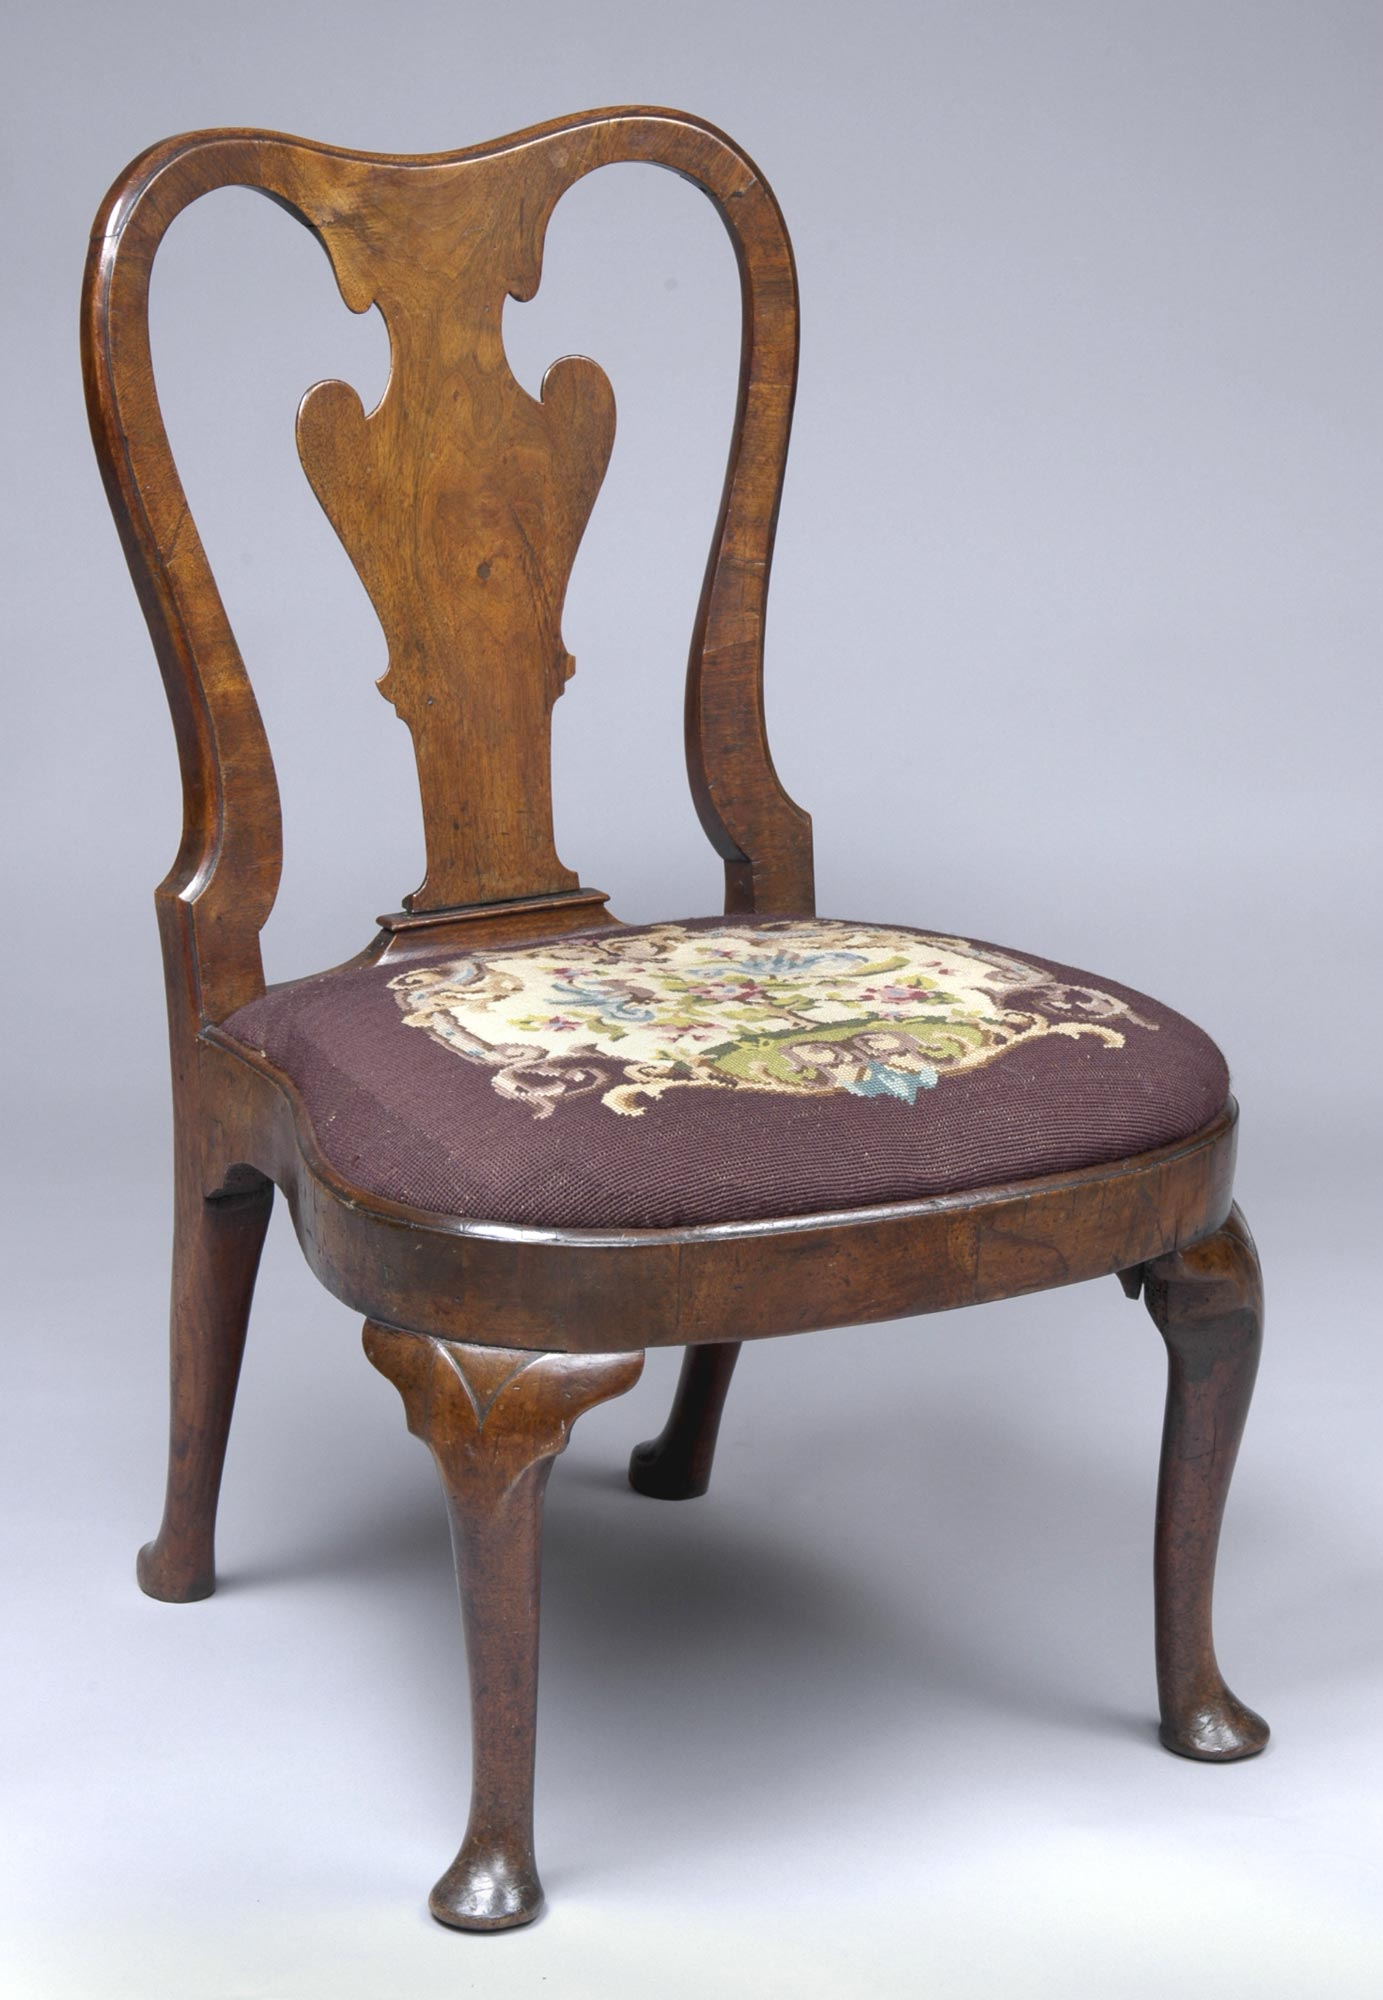 ... English Antique Period Queen Anne Walnut Side Chair ... - English Walnut Antique Side Chairs Queen Anne Walnut Side Chair